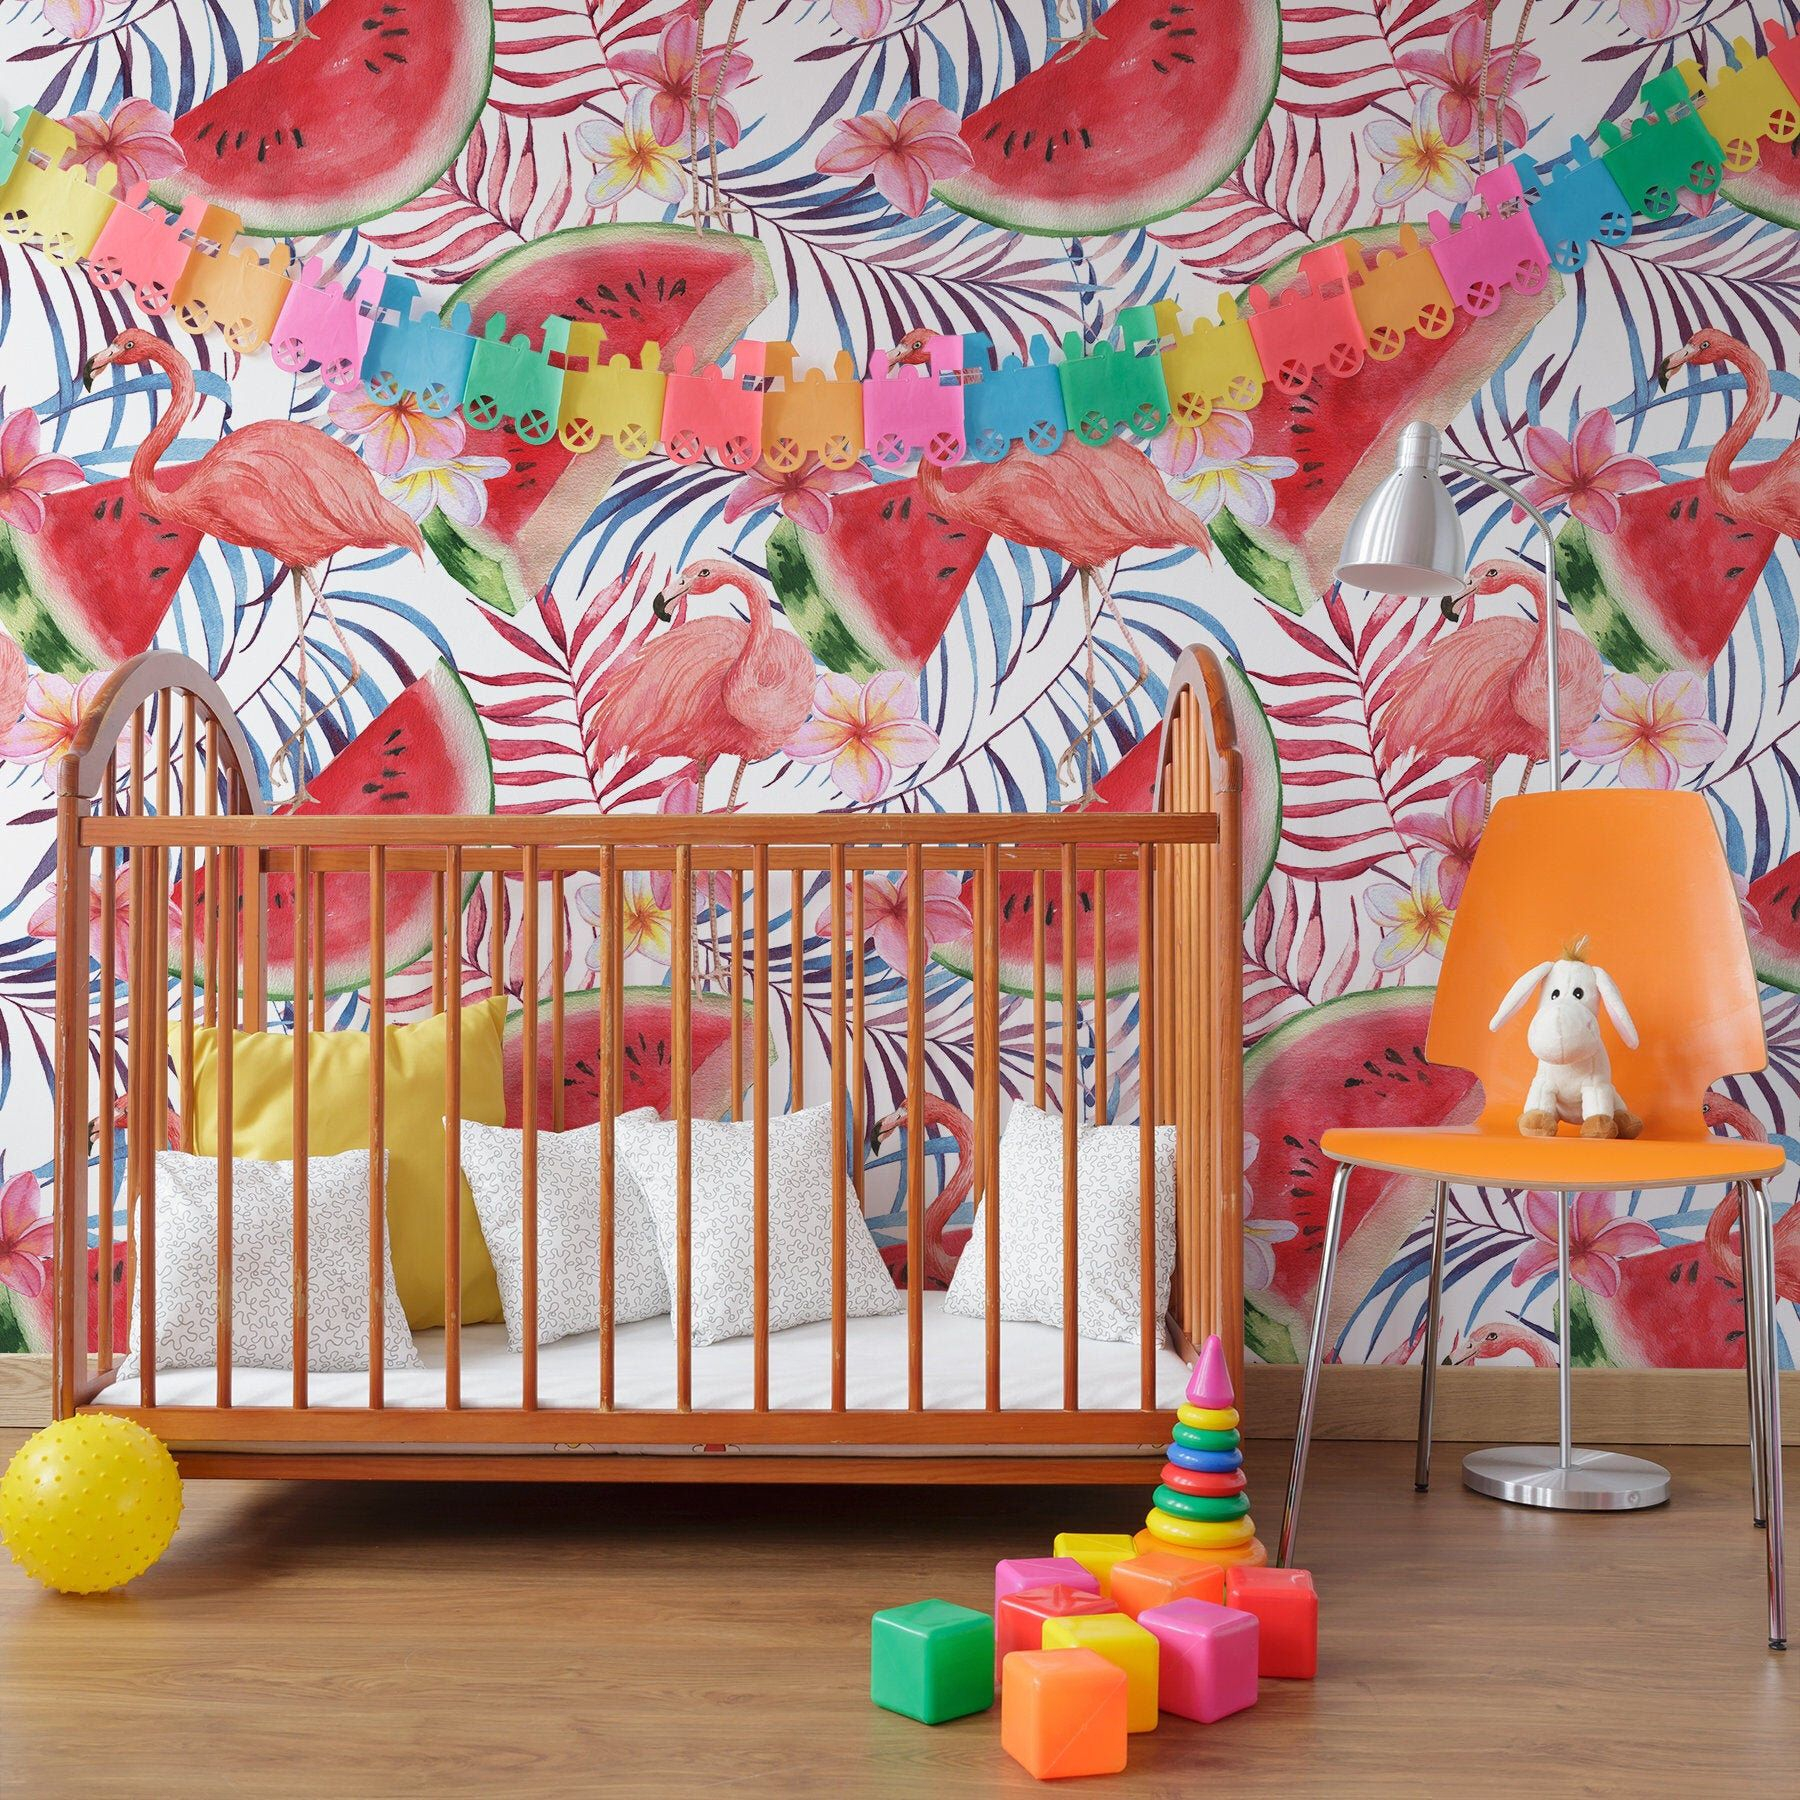 Bella Wallpaper Removable Wallpaper Peel And Stick Etsy Nursery Wall Decor Removable Wallpaper Girl Room